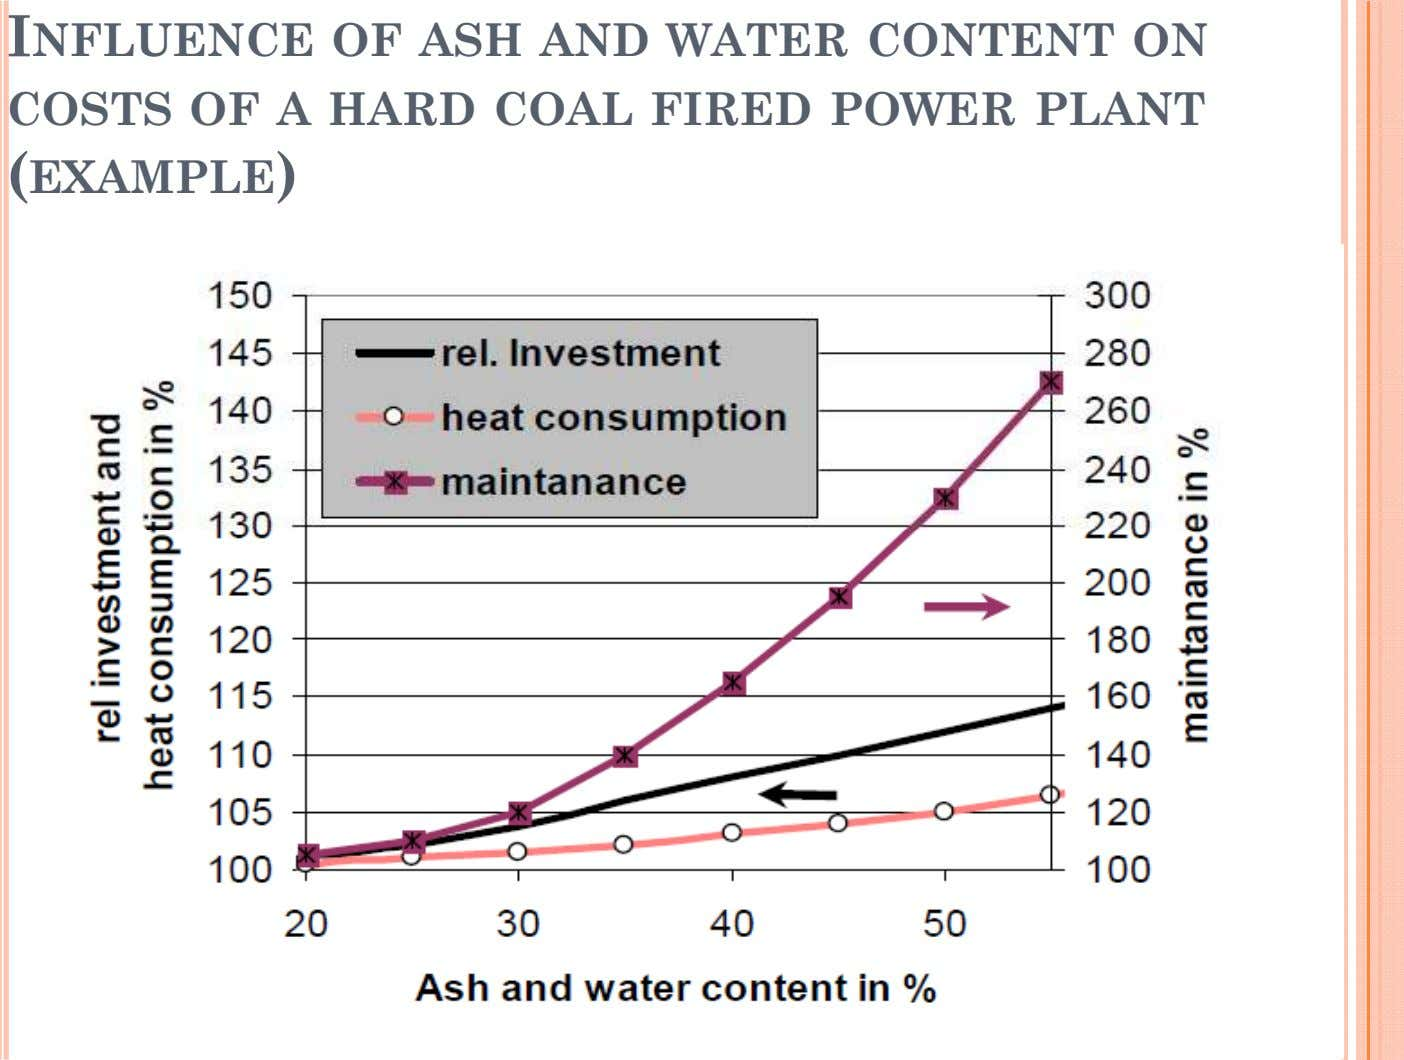 INFLUENCE OF ASH AND WATER CONTENT ON COSTS OF A HARD COAL FIRED POWER PLANT (EXAMPLE)